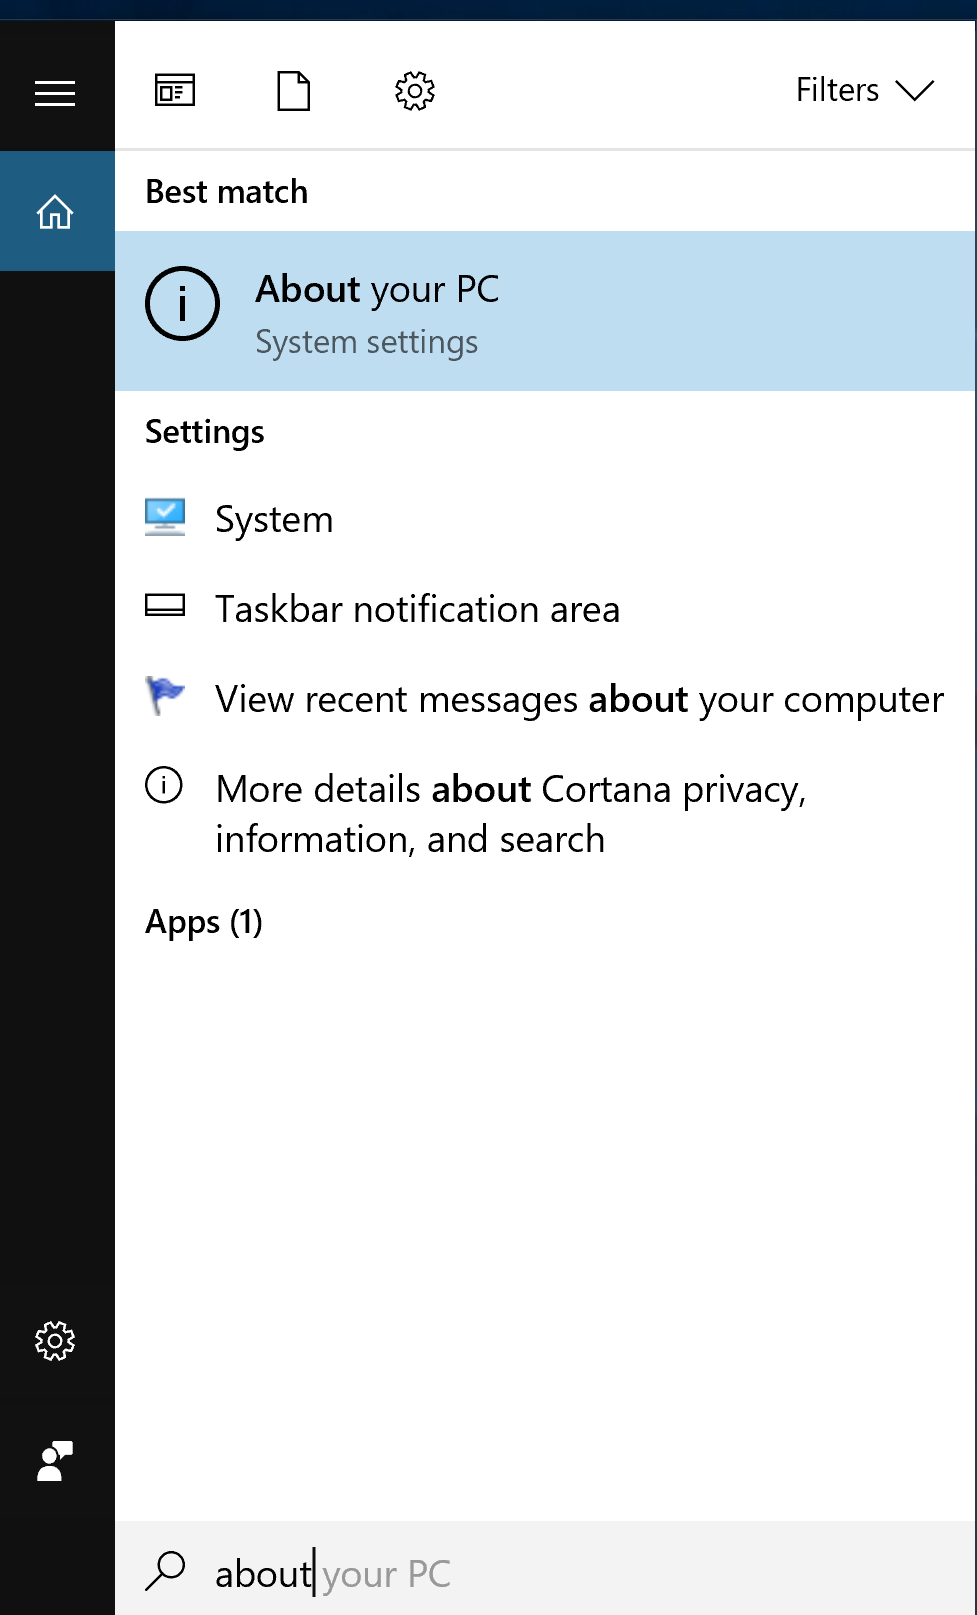 How to find out currently installed Windows Version (Fall